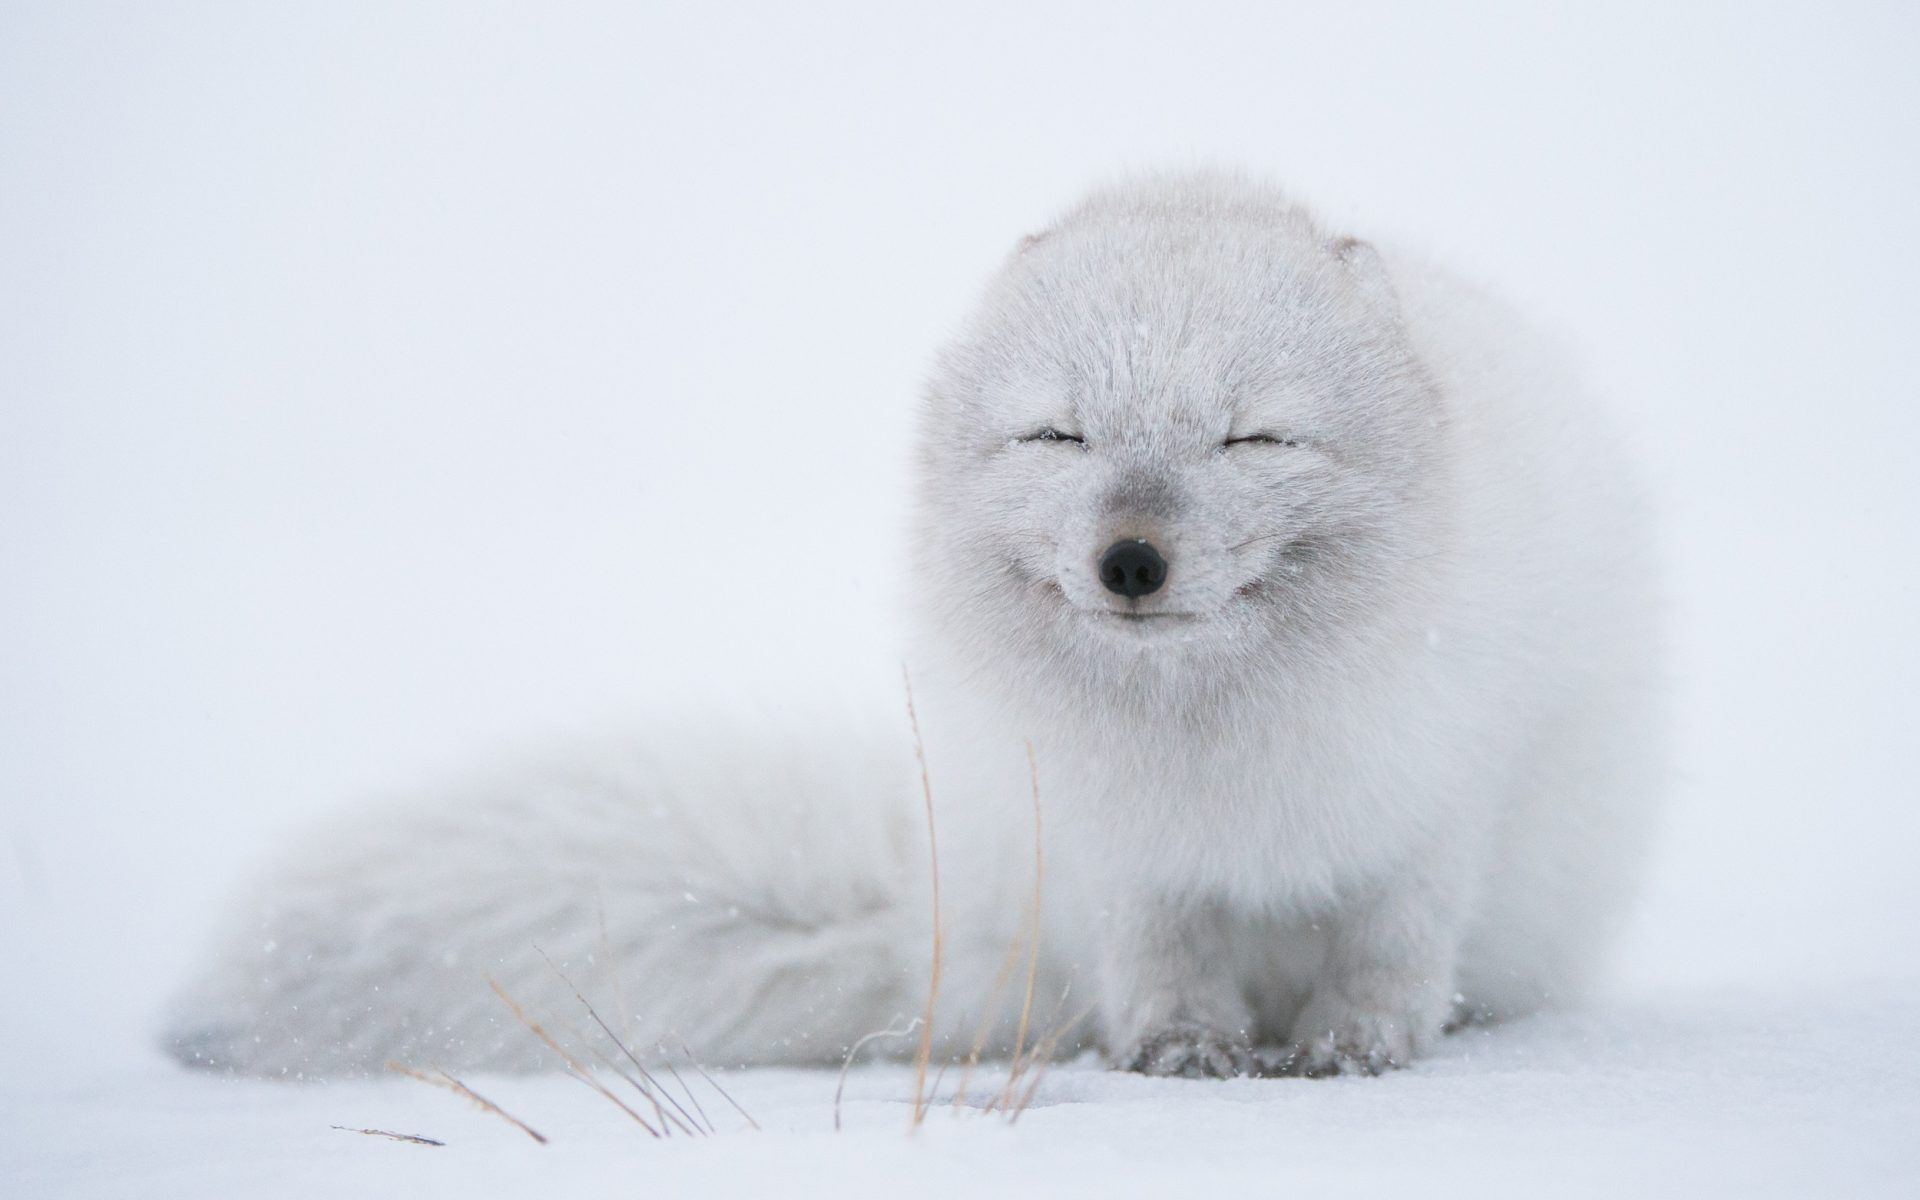 Free Download Arctic Fox Wallpaper - wallpaper.wiki